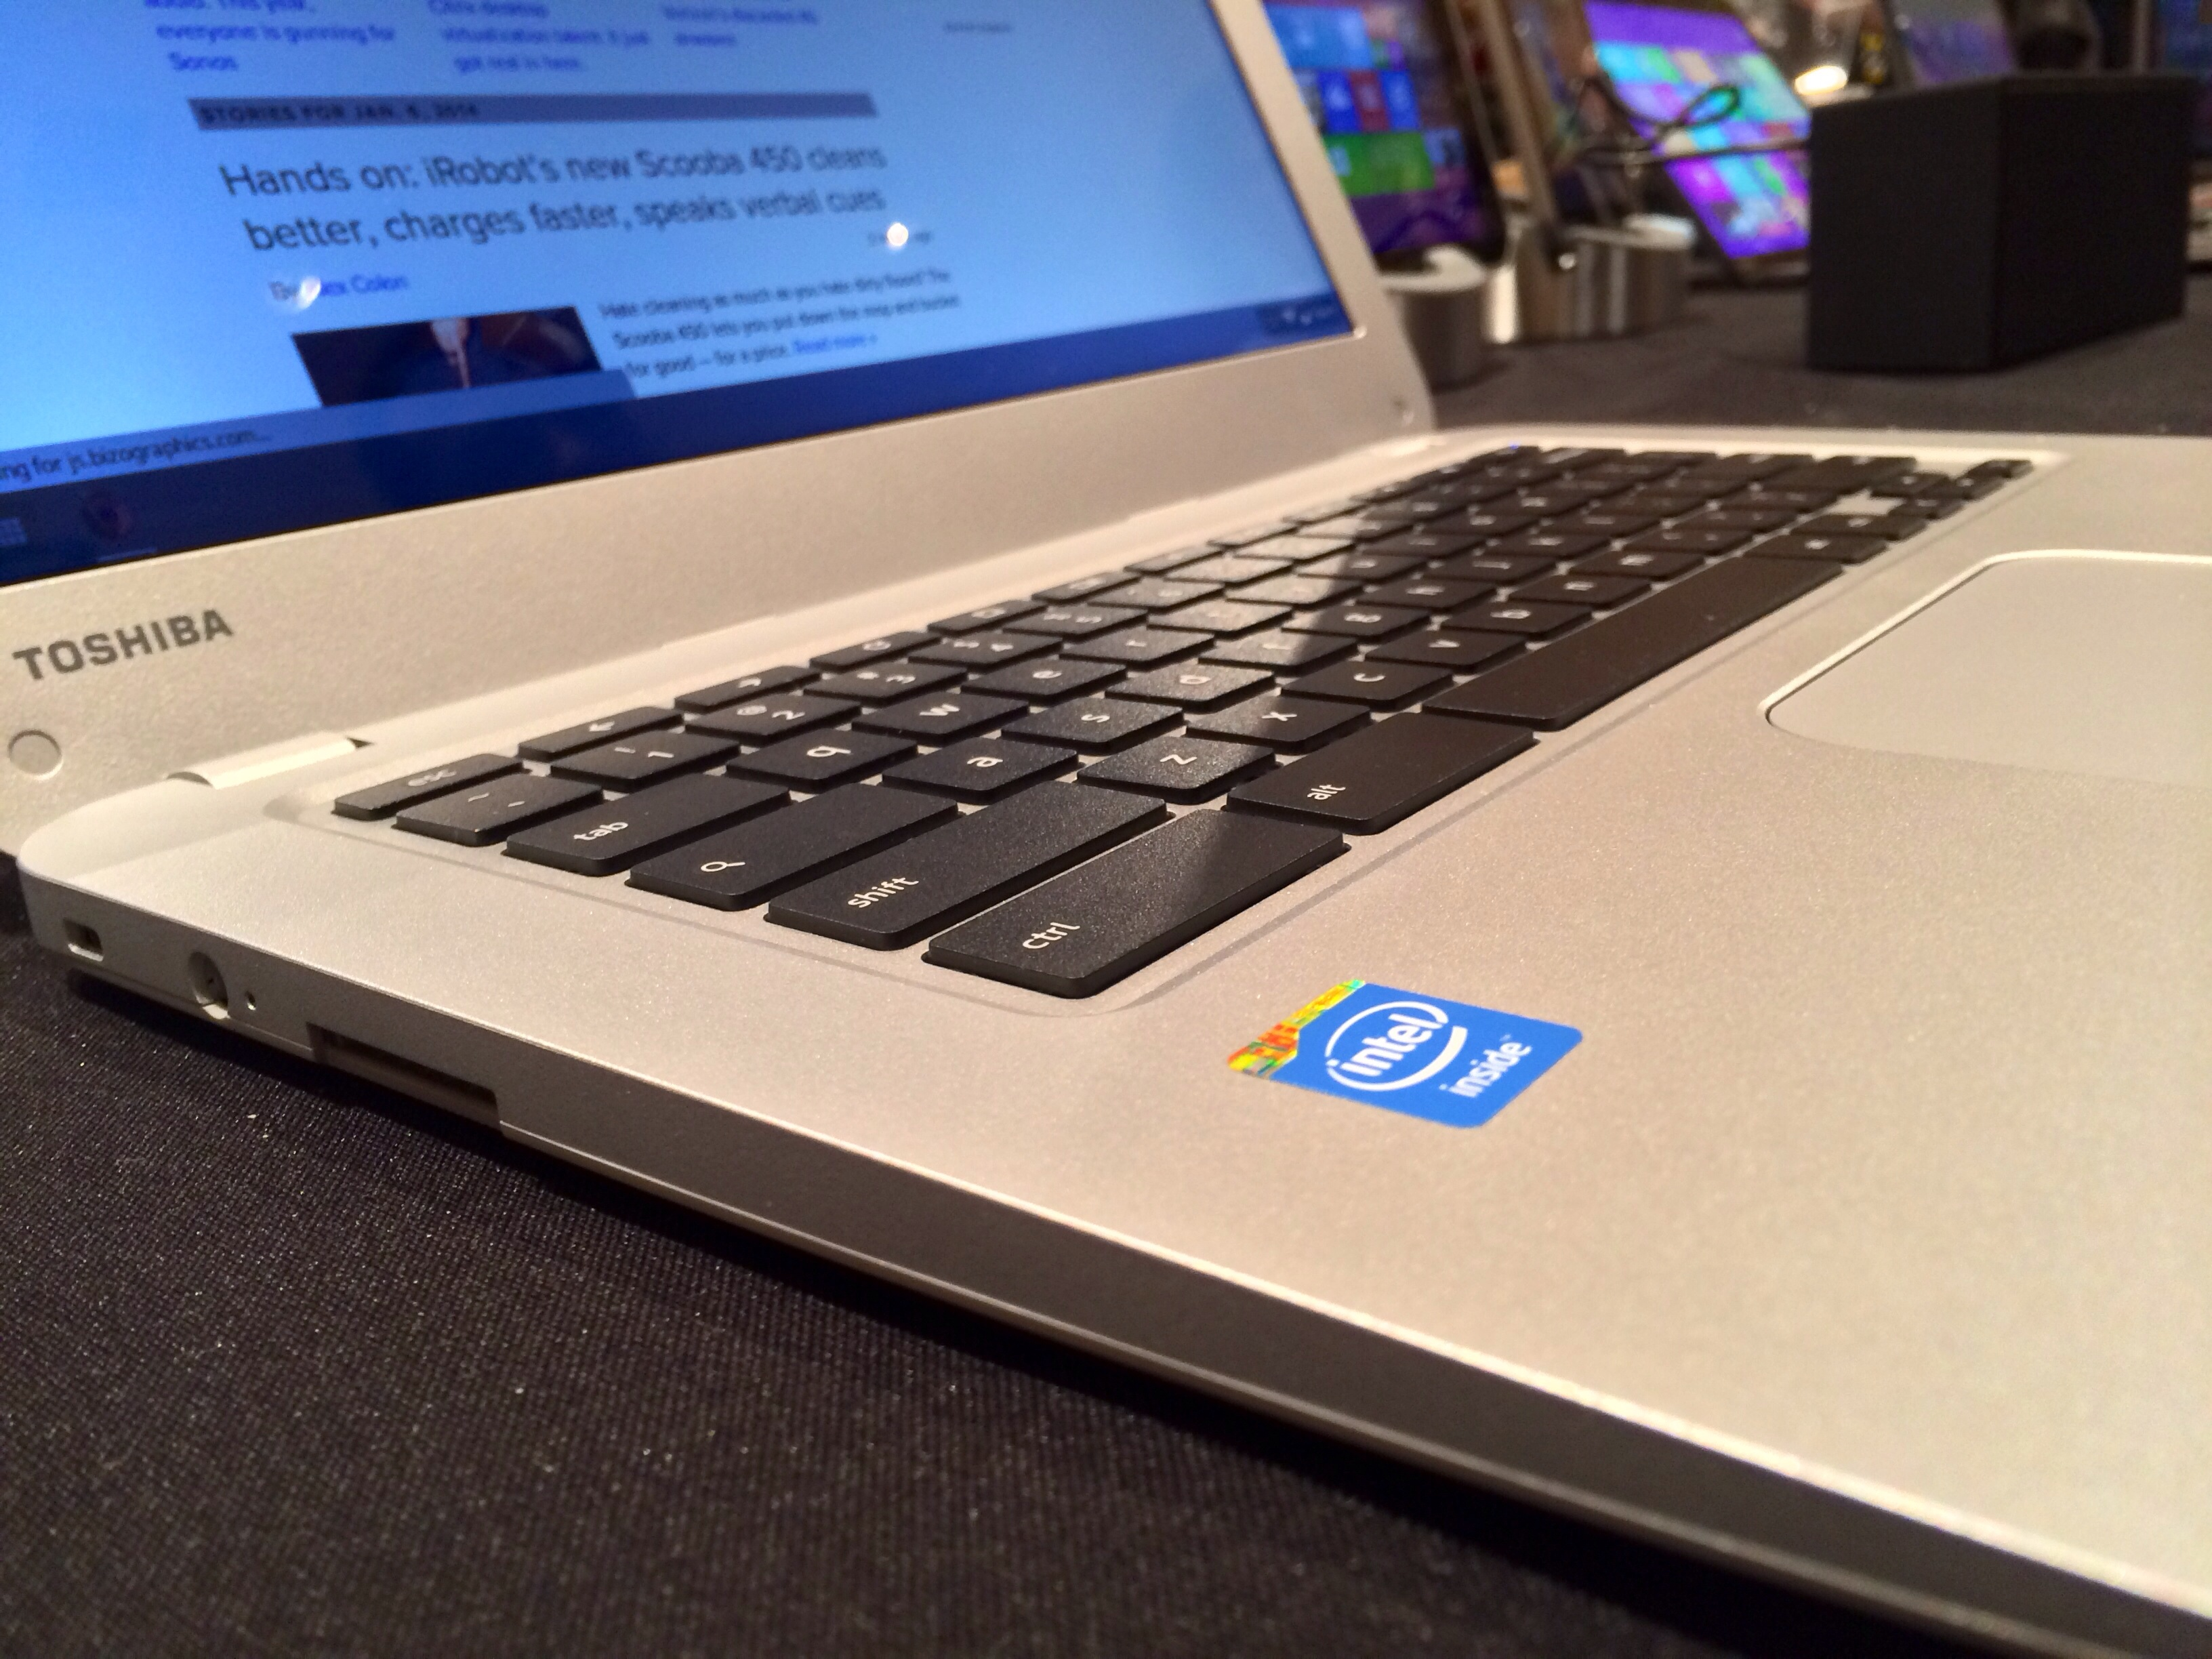 Toshiba Chromebook side angle